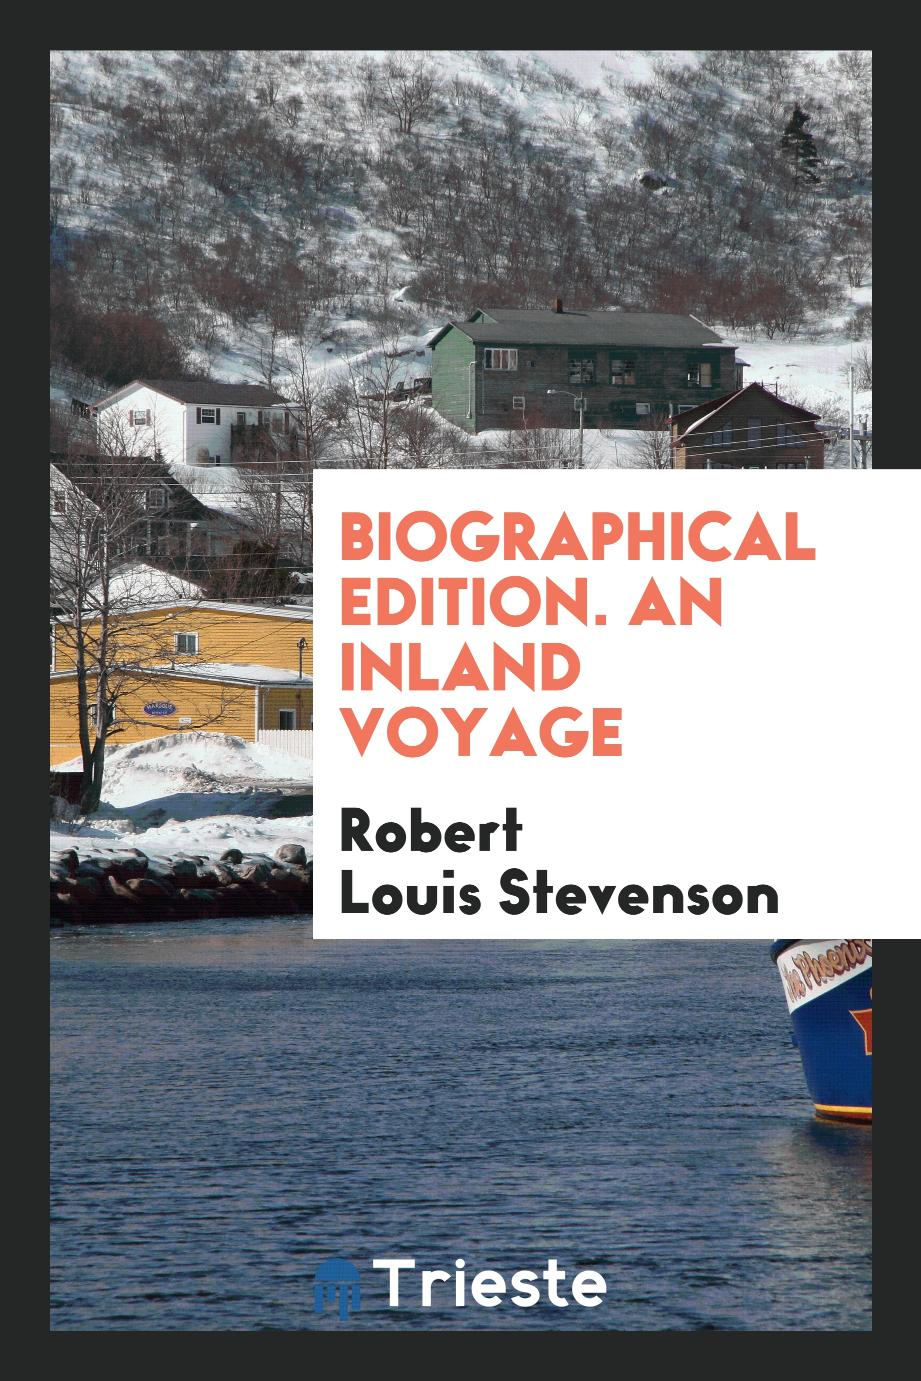 Biographical Edition. An Inland Voyage